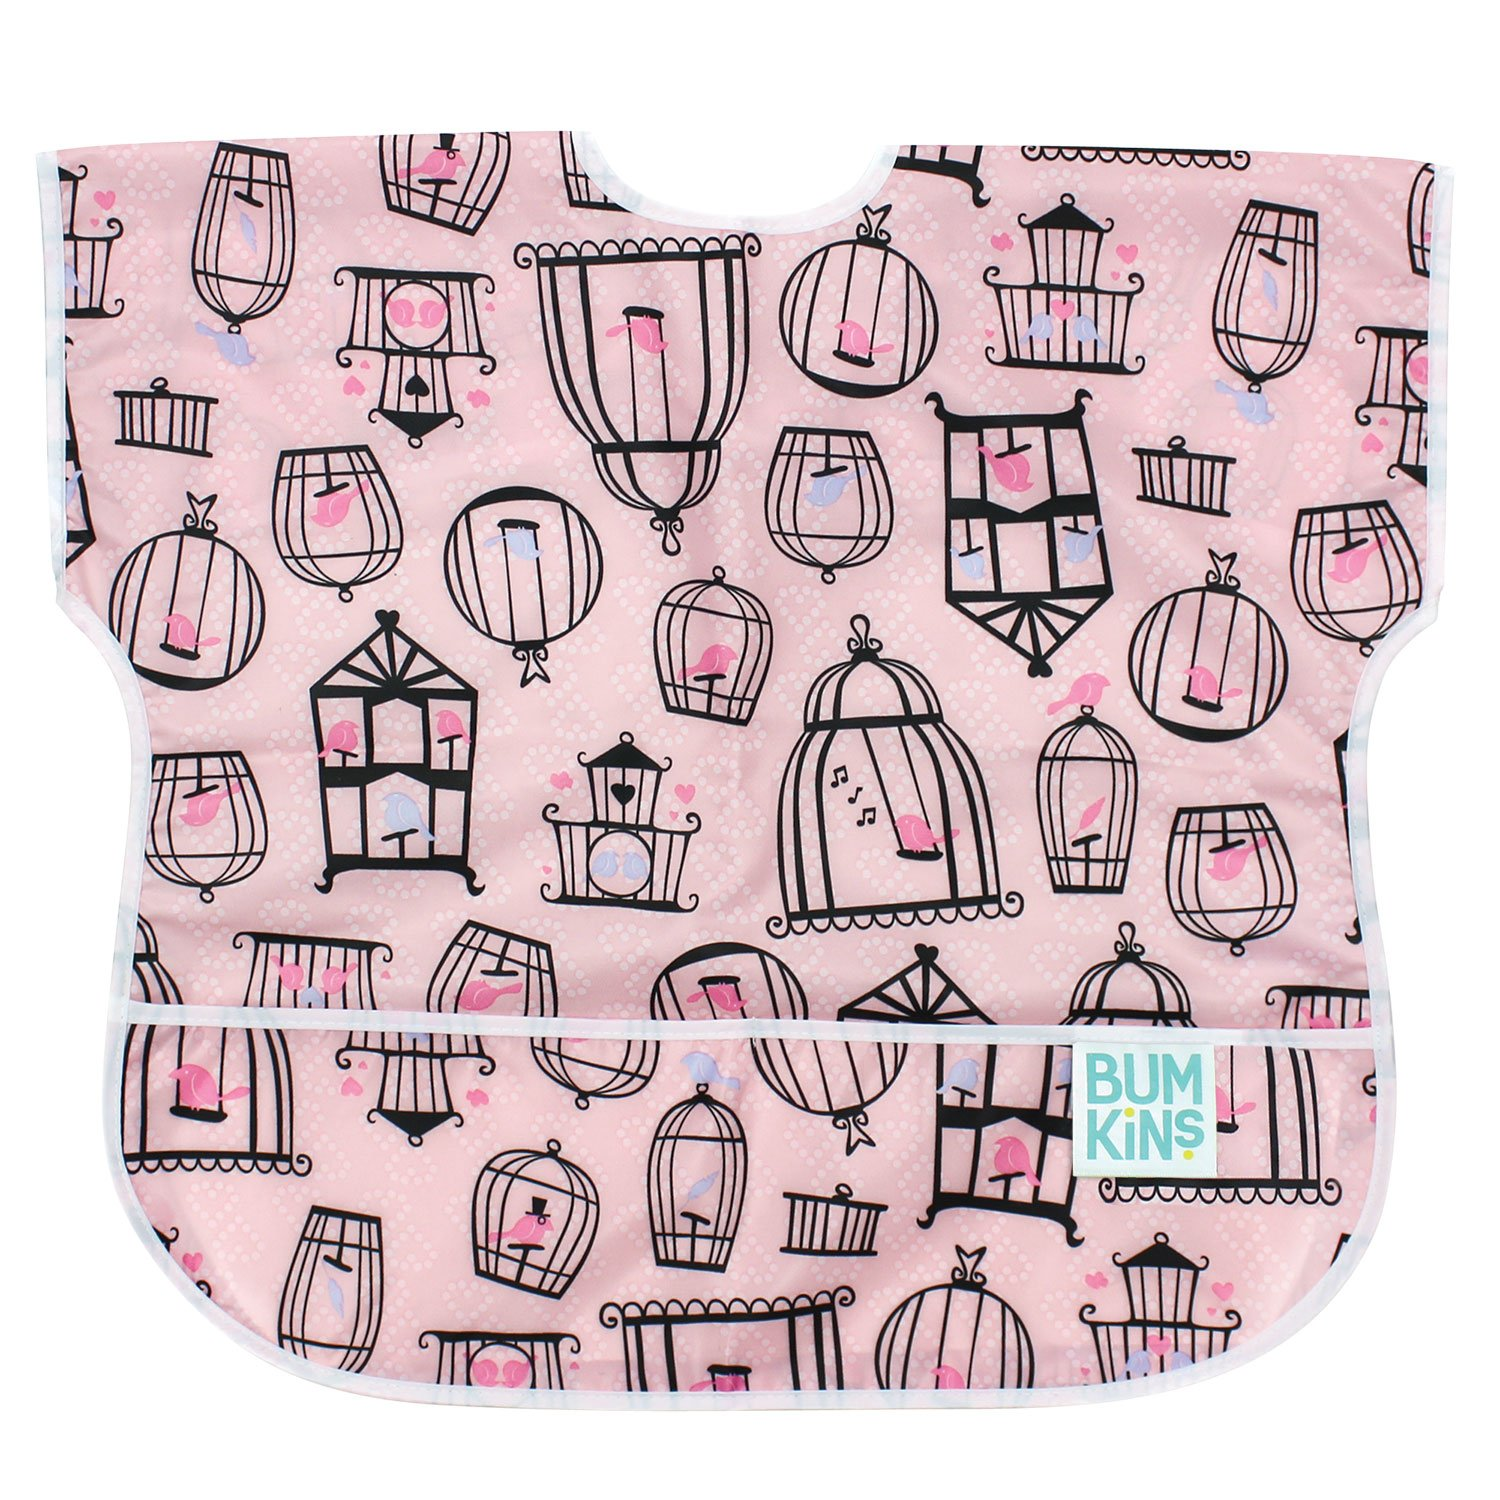 Bumkins Waterproof Junior Bib, Tweet (1-3 Years)